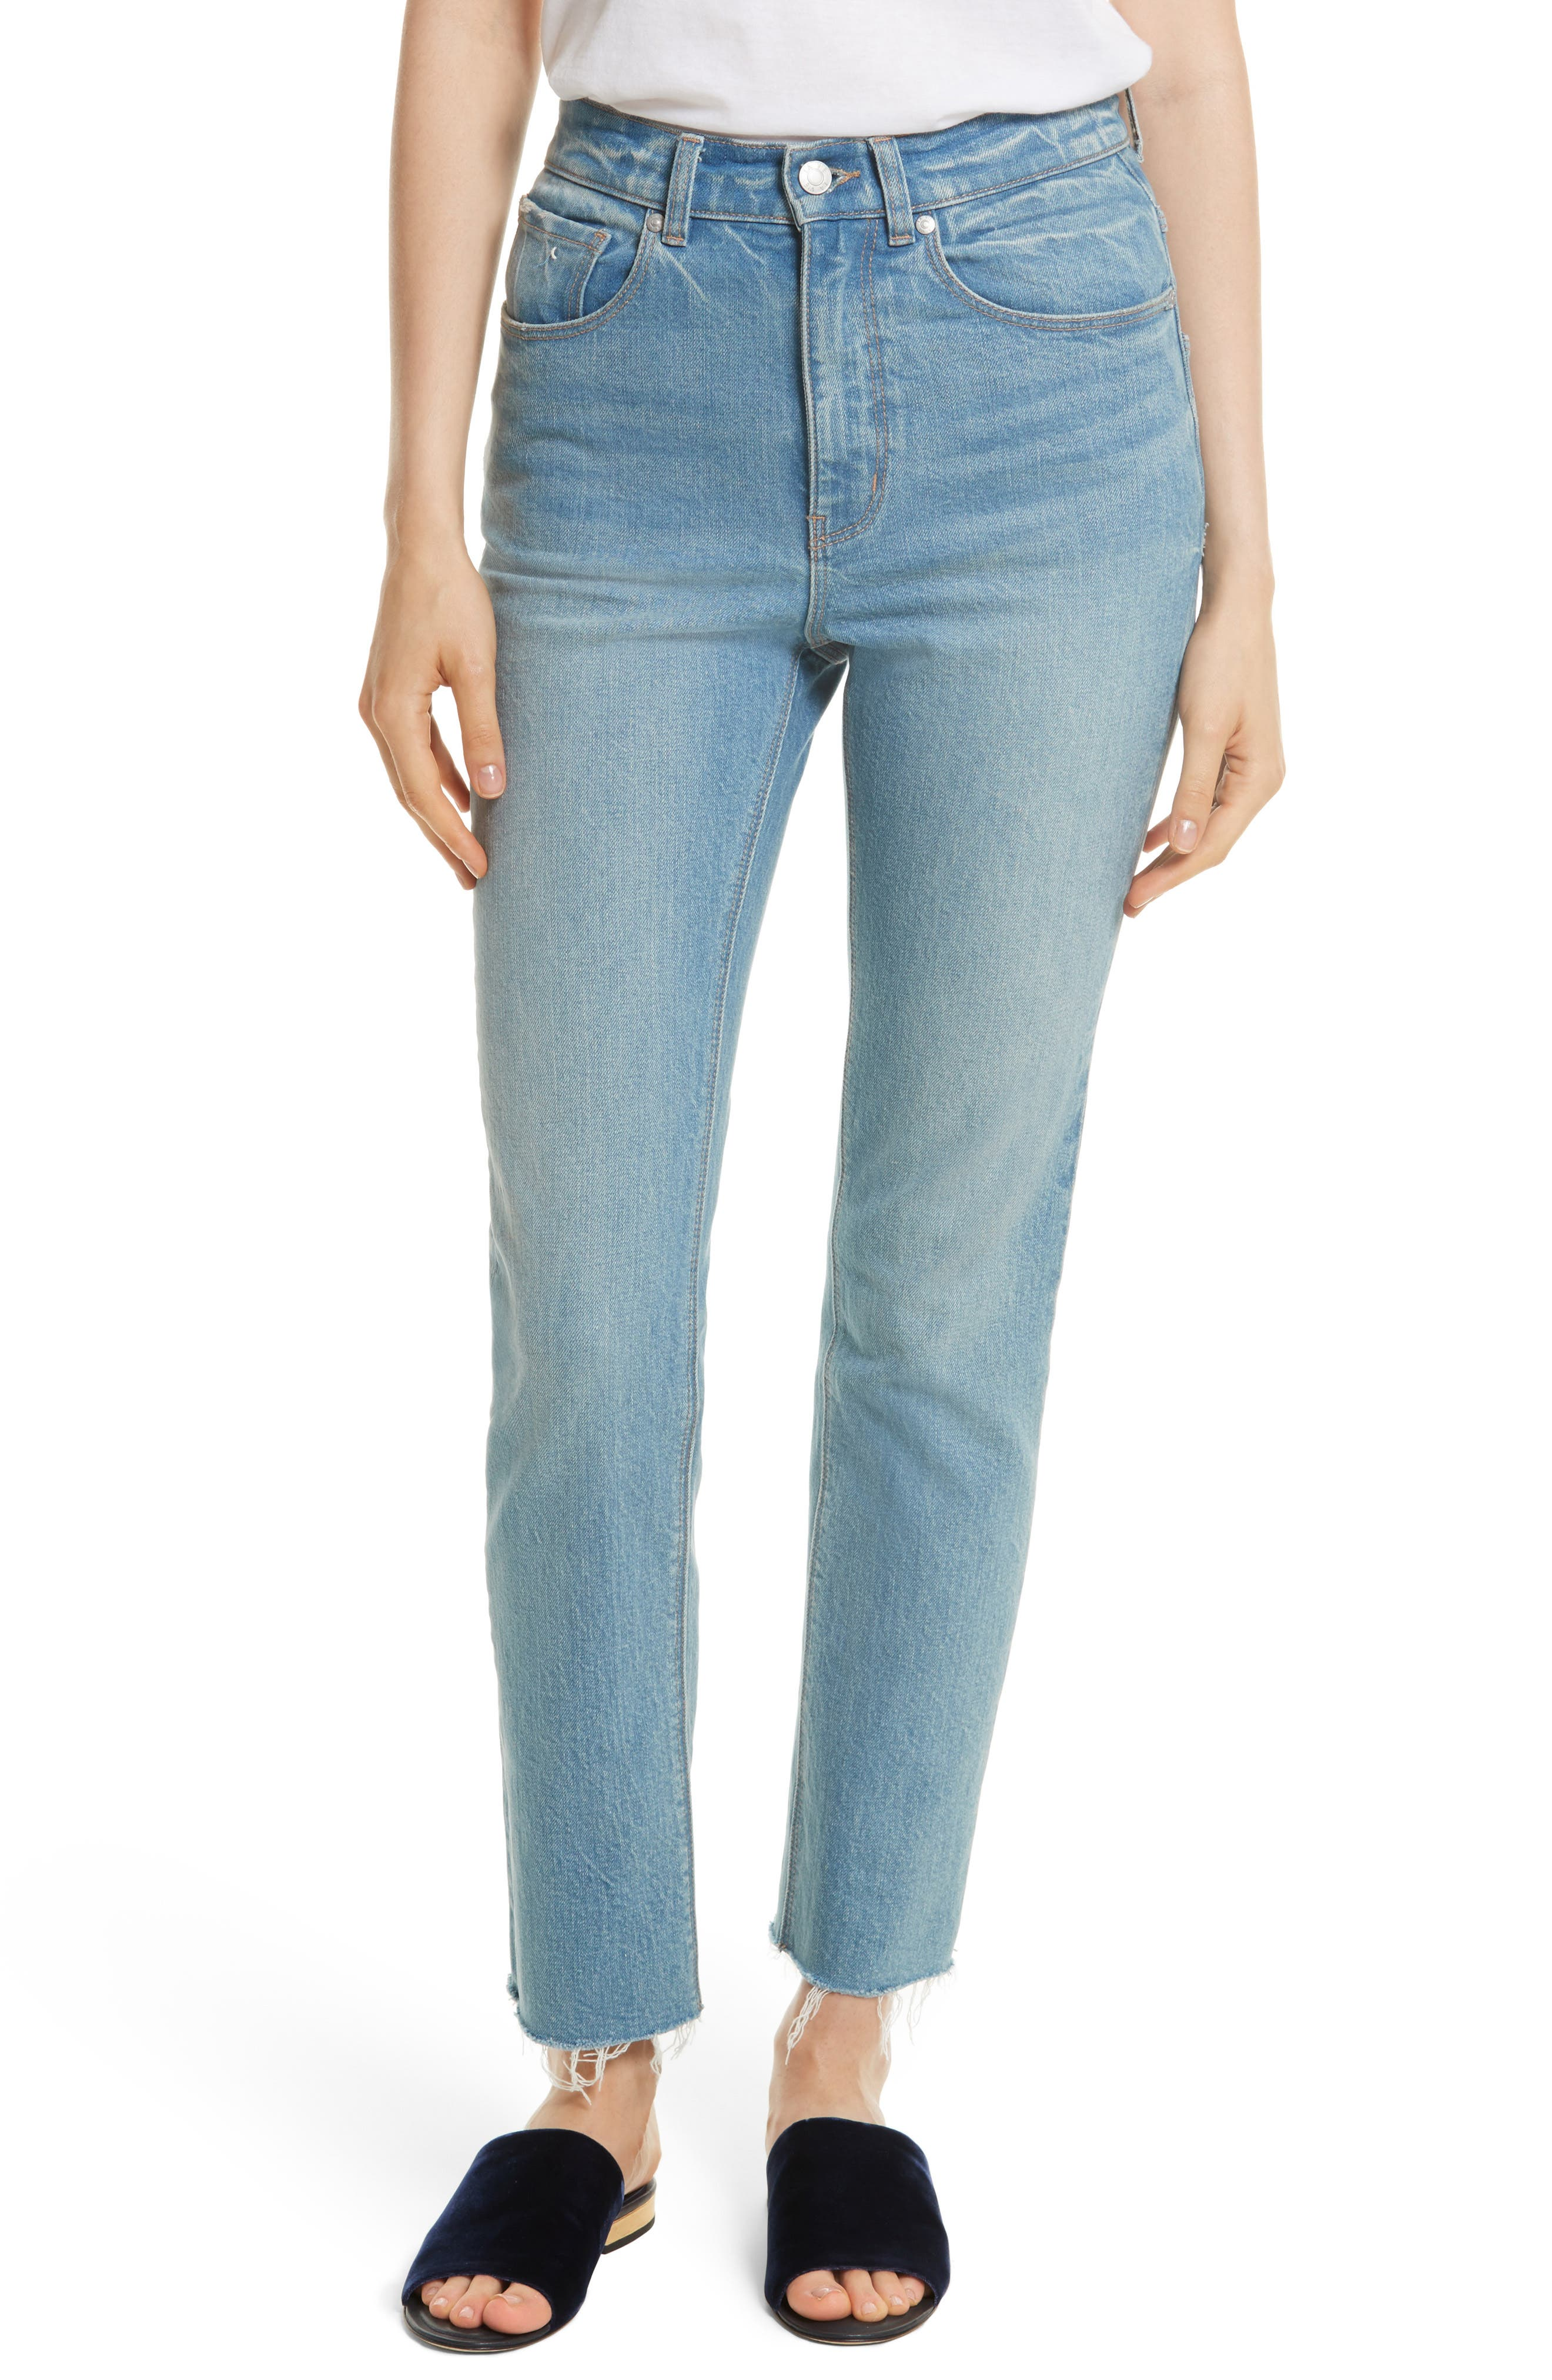 La Vie Rebecca Taylor Ines High Waist Ankle Jeans (Bluebell)